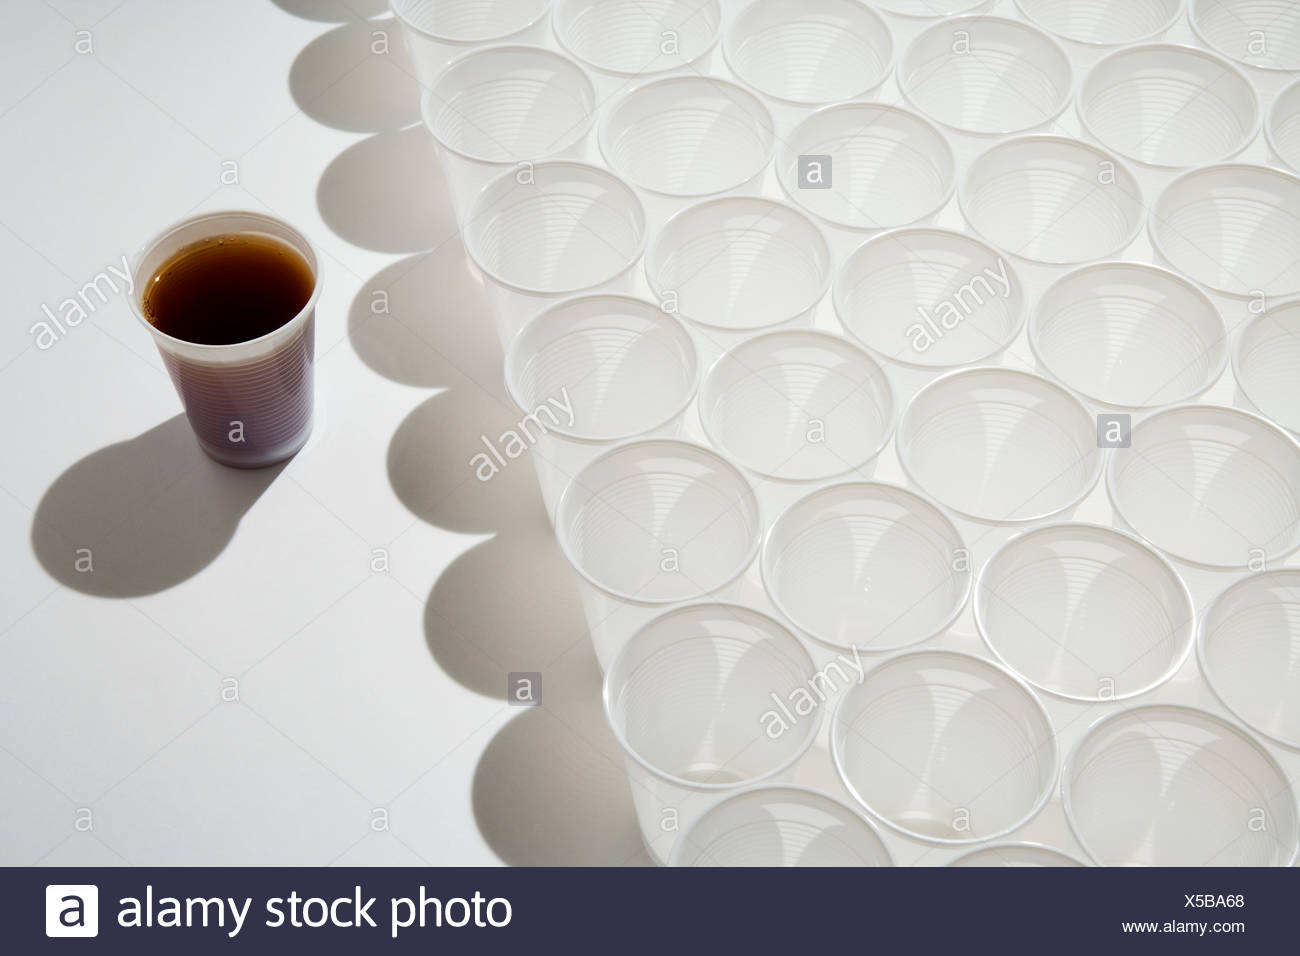 Cup of cola and rows of empty cups - Stock Image